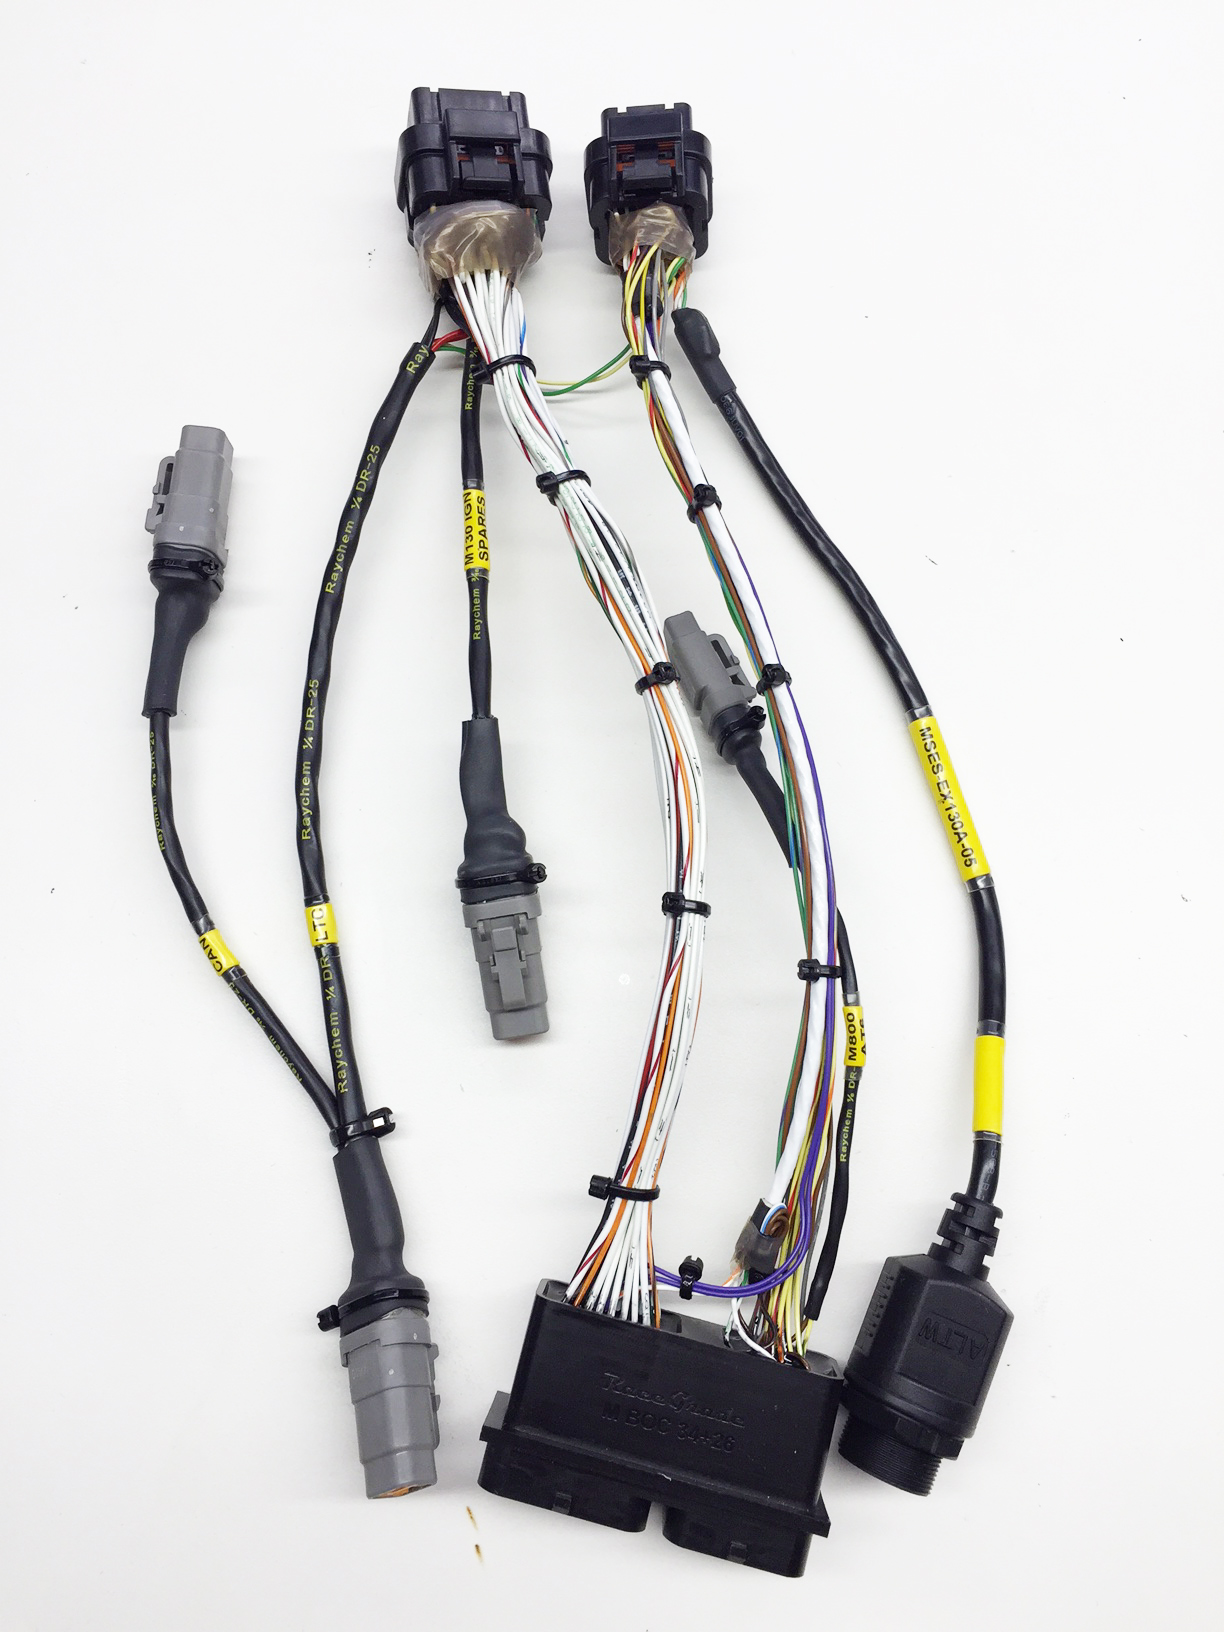 M800 TO M130 HARNESS ADAPTER